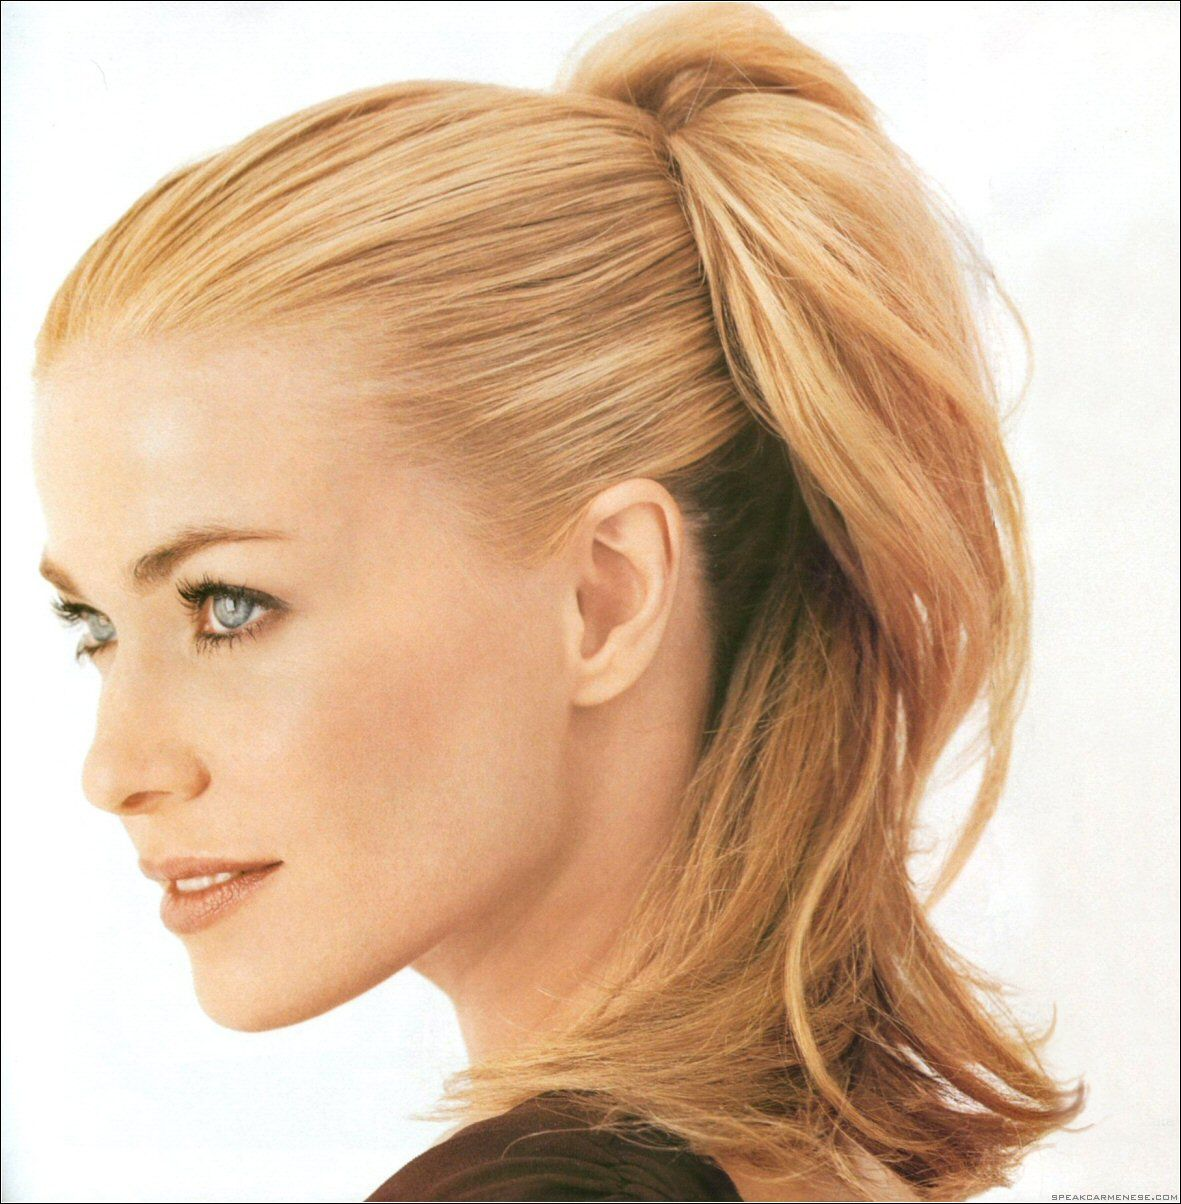 How to get the look, smoothed hair into a ponytail. Then ...